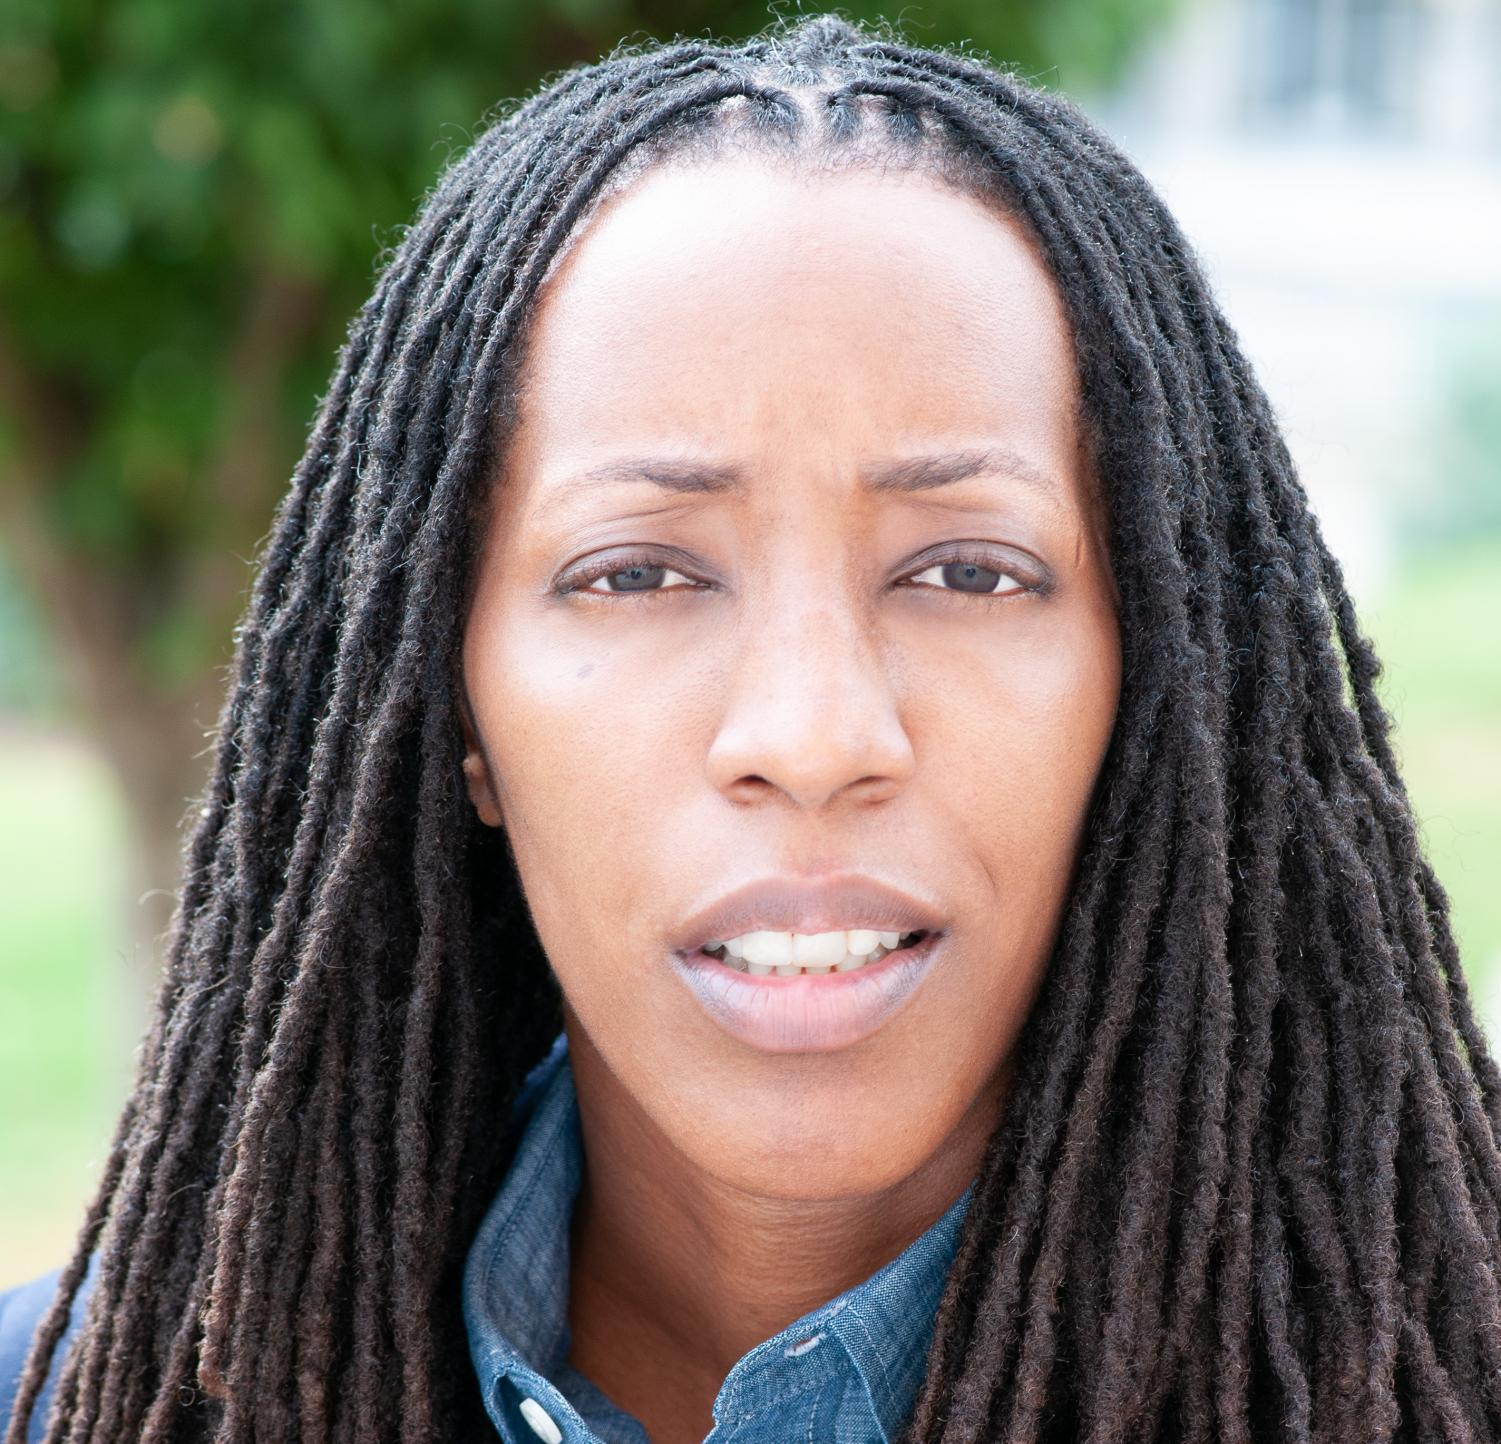 Bettina Love is an associate professor of Educational Theory and Practice and the creator of the hip-hop civics curriculum GET FREE. She is set to speak on campus Monday, Feb. 18 in the University Union Redwood Room at 3 p.m.